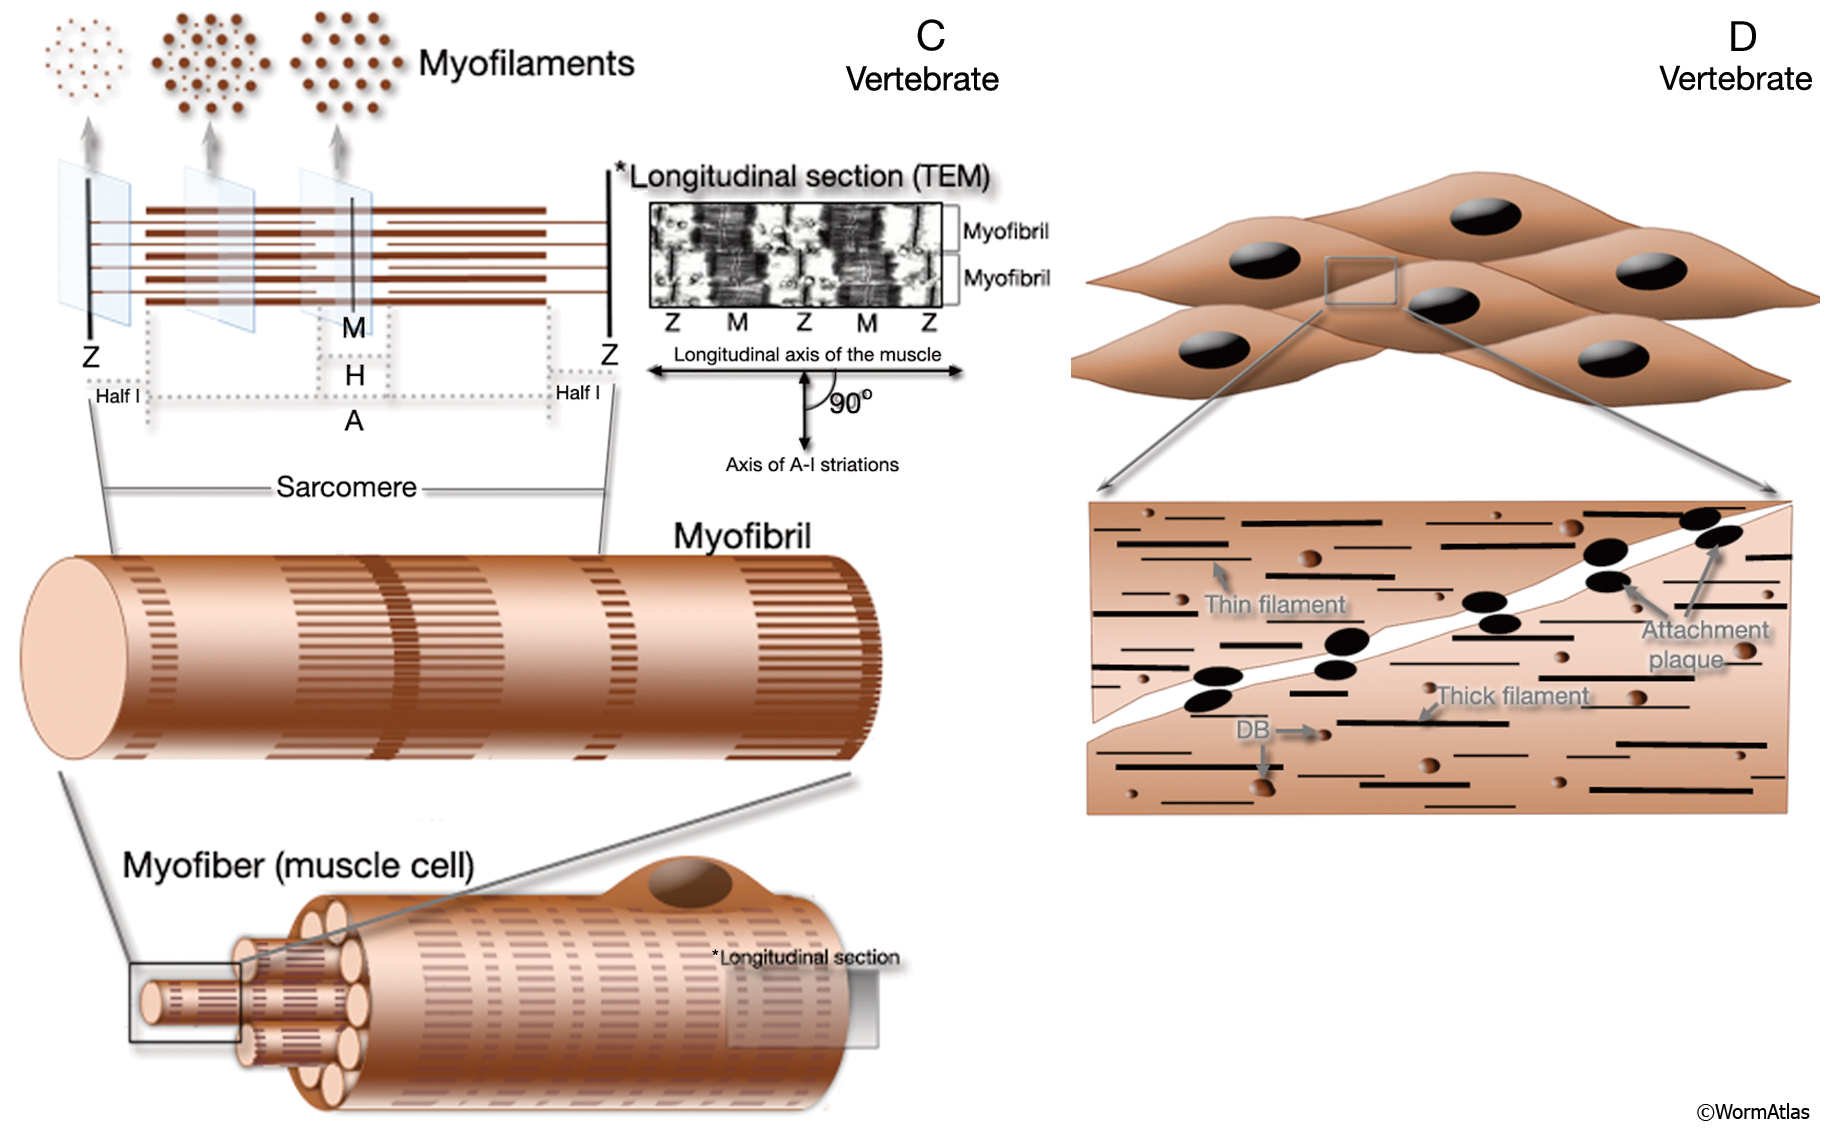 hight resolution of musfig 1cd the contractile apparatus in vertebrates